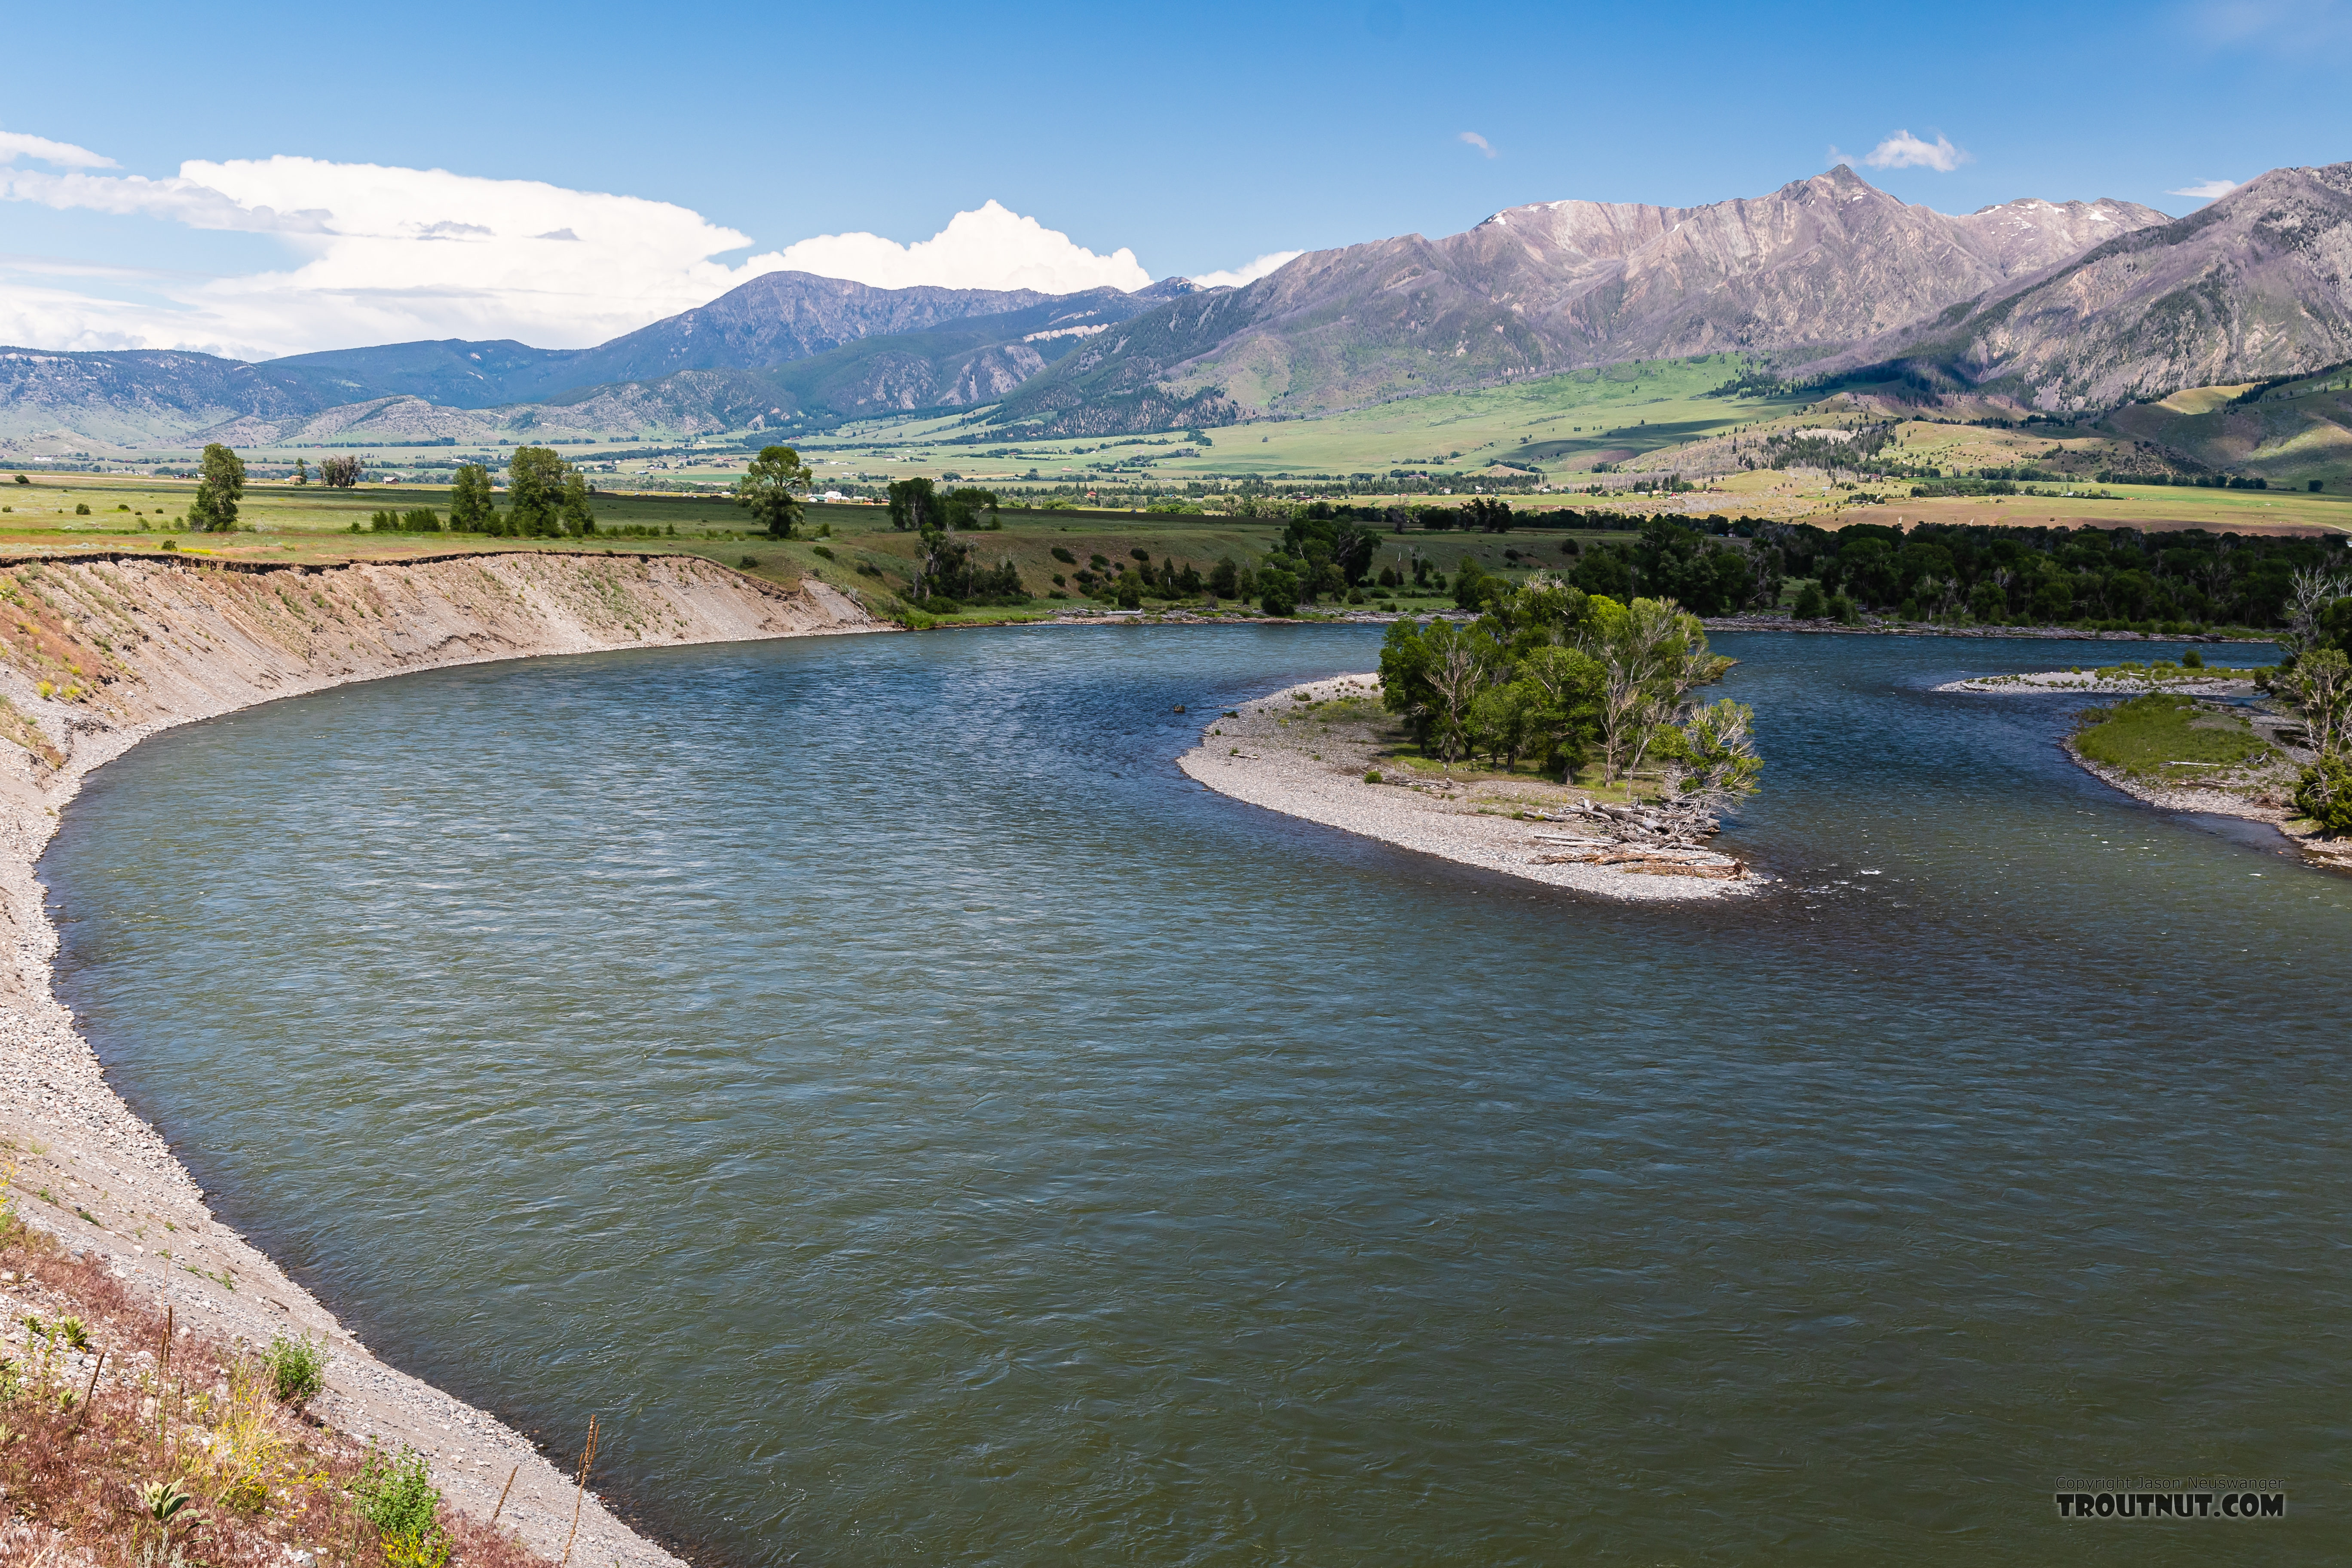 Yellowstone River above Mallard's Rest in Paradise Valley From the Yellowstone River in Montana.